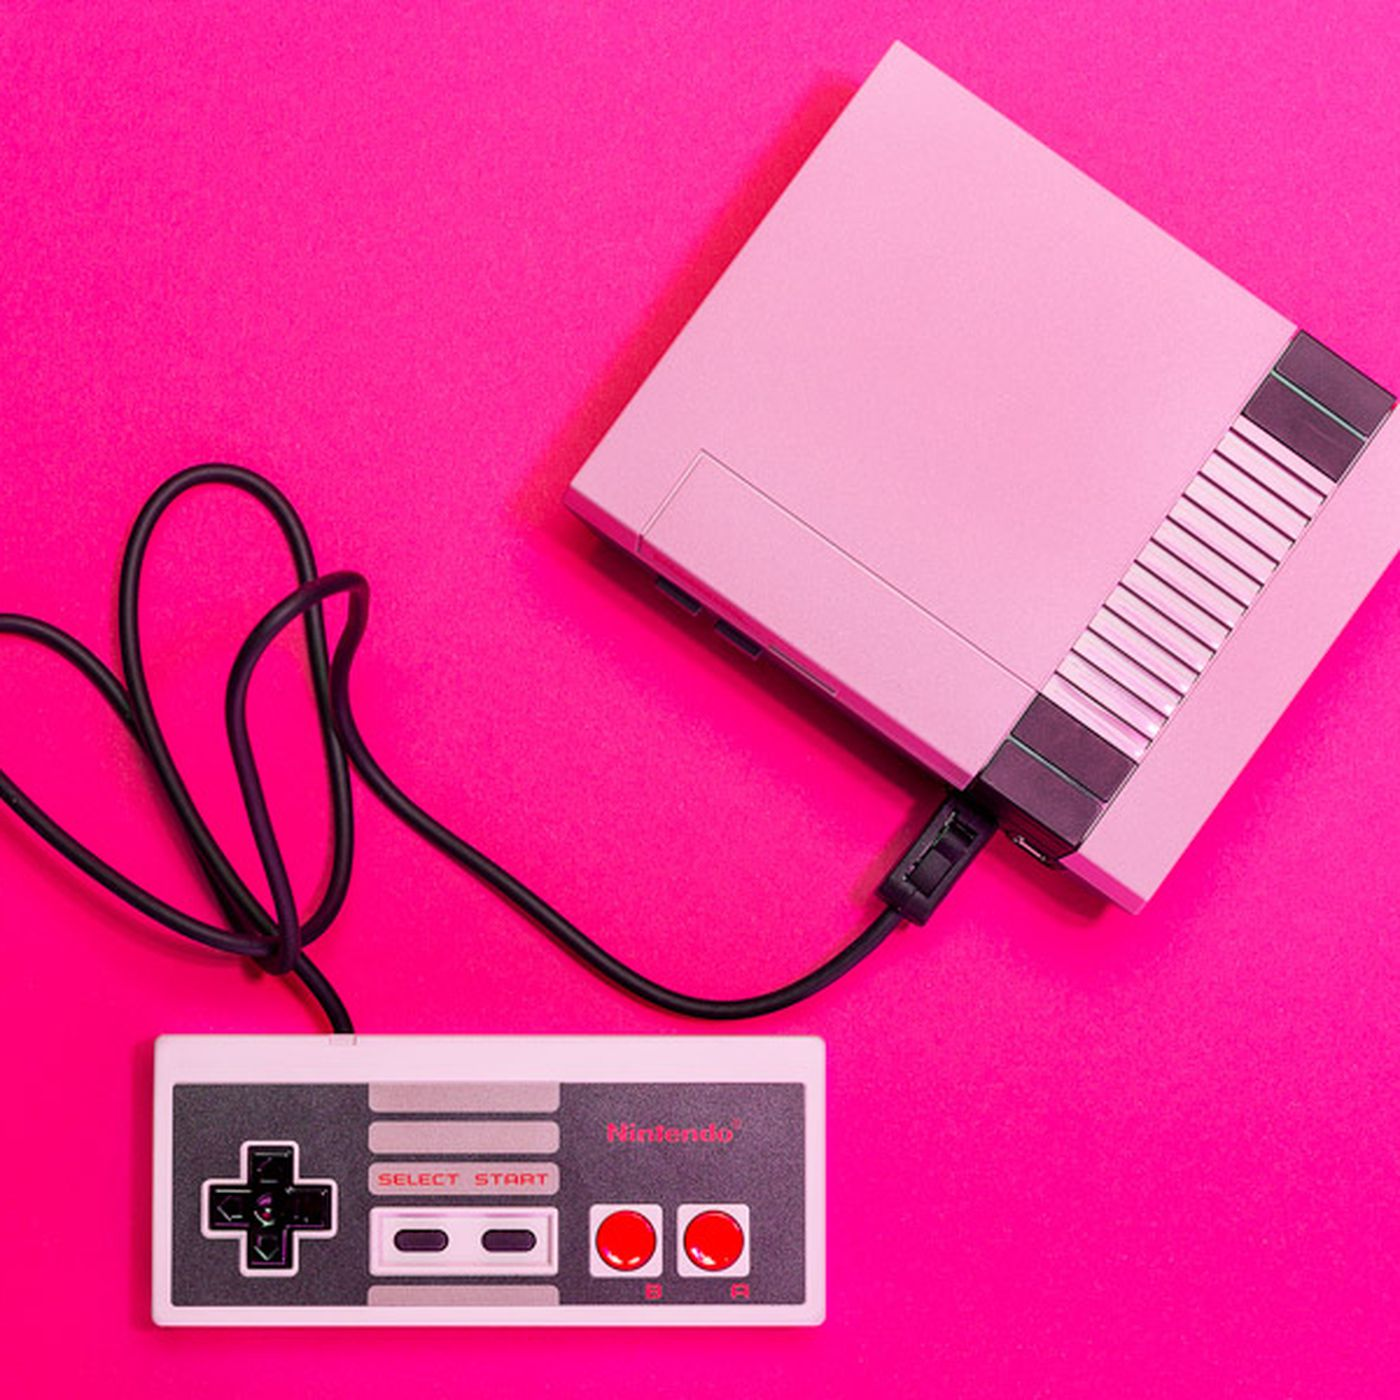 Nintendo is bringing back the NES Classic on June 29th - The Verge